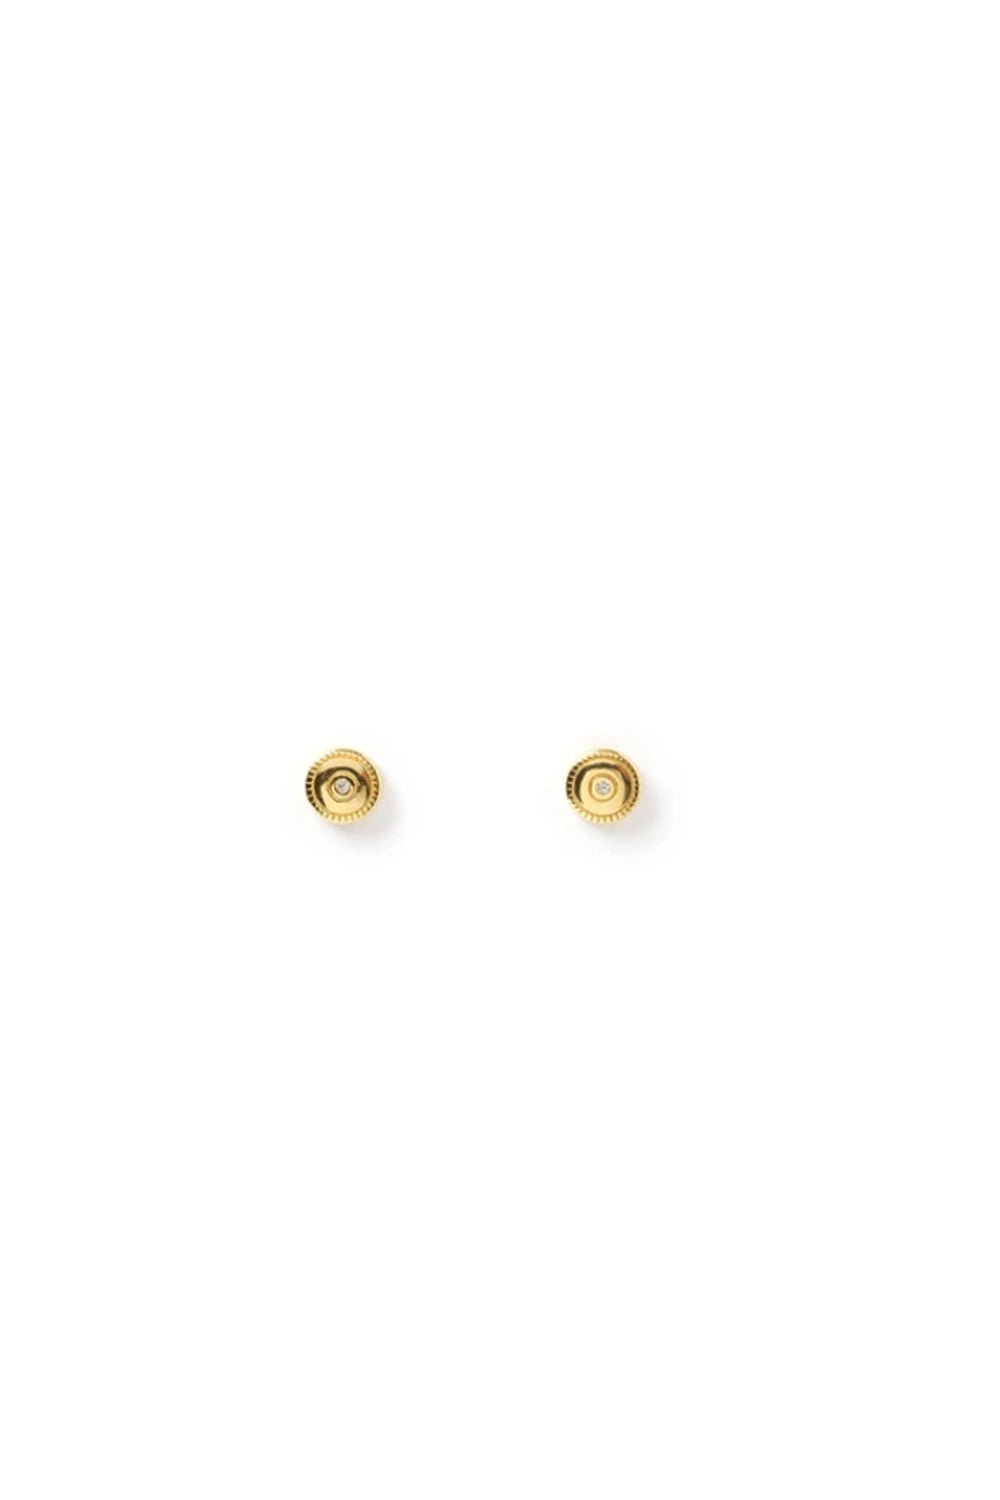 ARMS OF EVE - Guava Gold Studs - Australian Fashion and Accessories Boutique - Faid Store